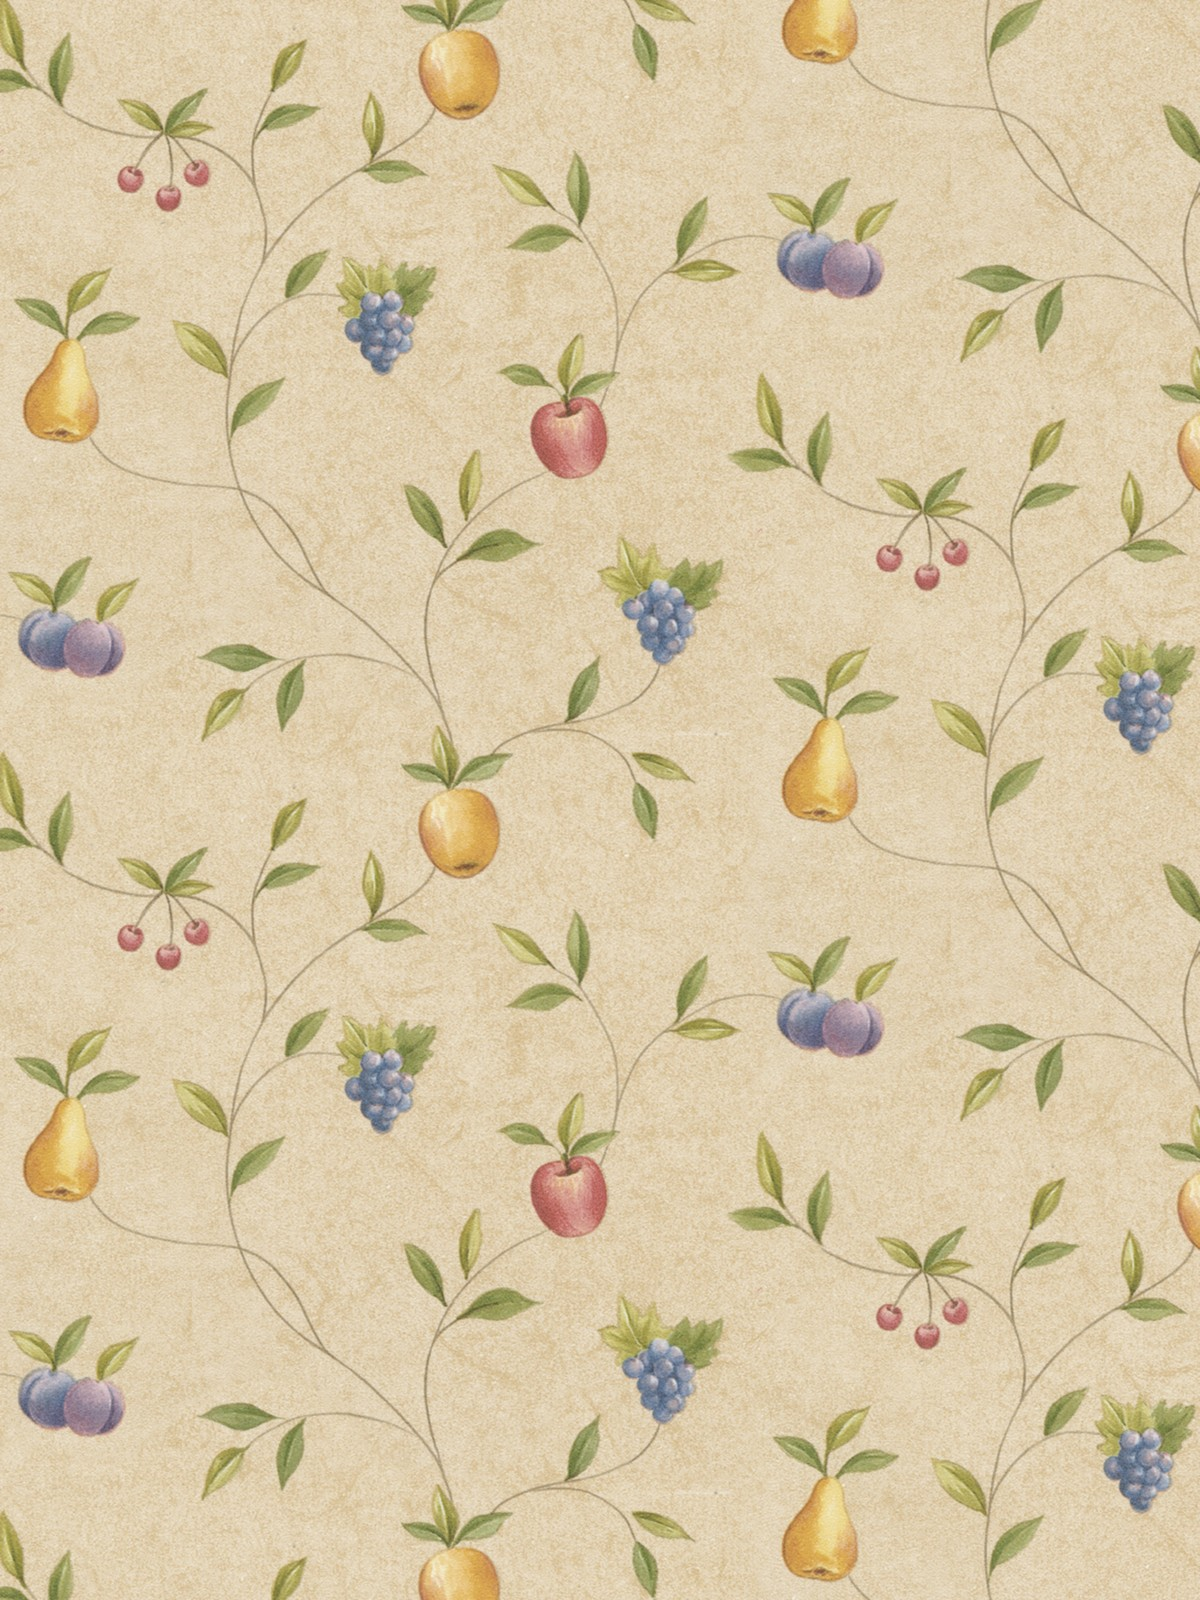 Looking for Kitchen wallpaper 1500x2000